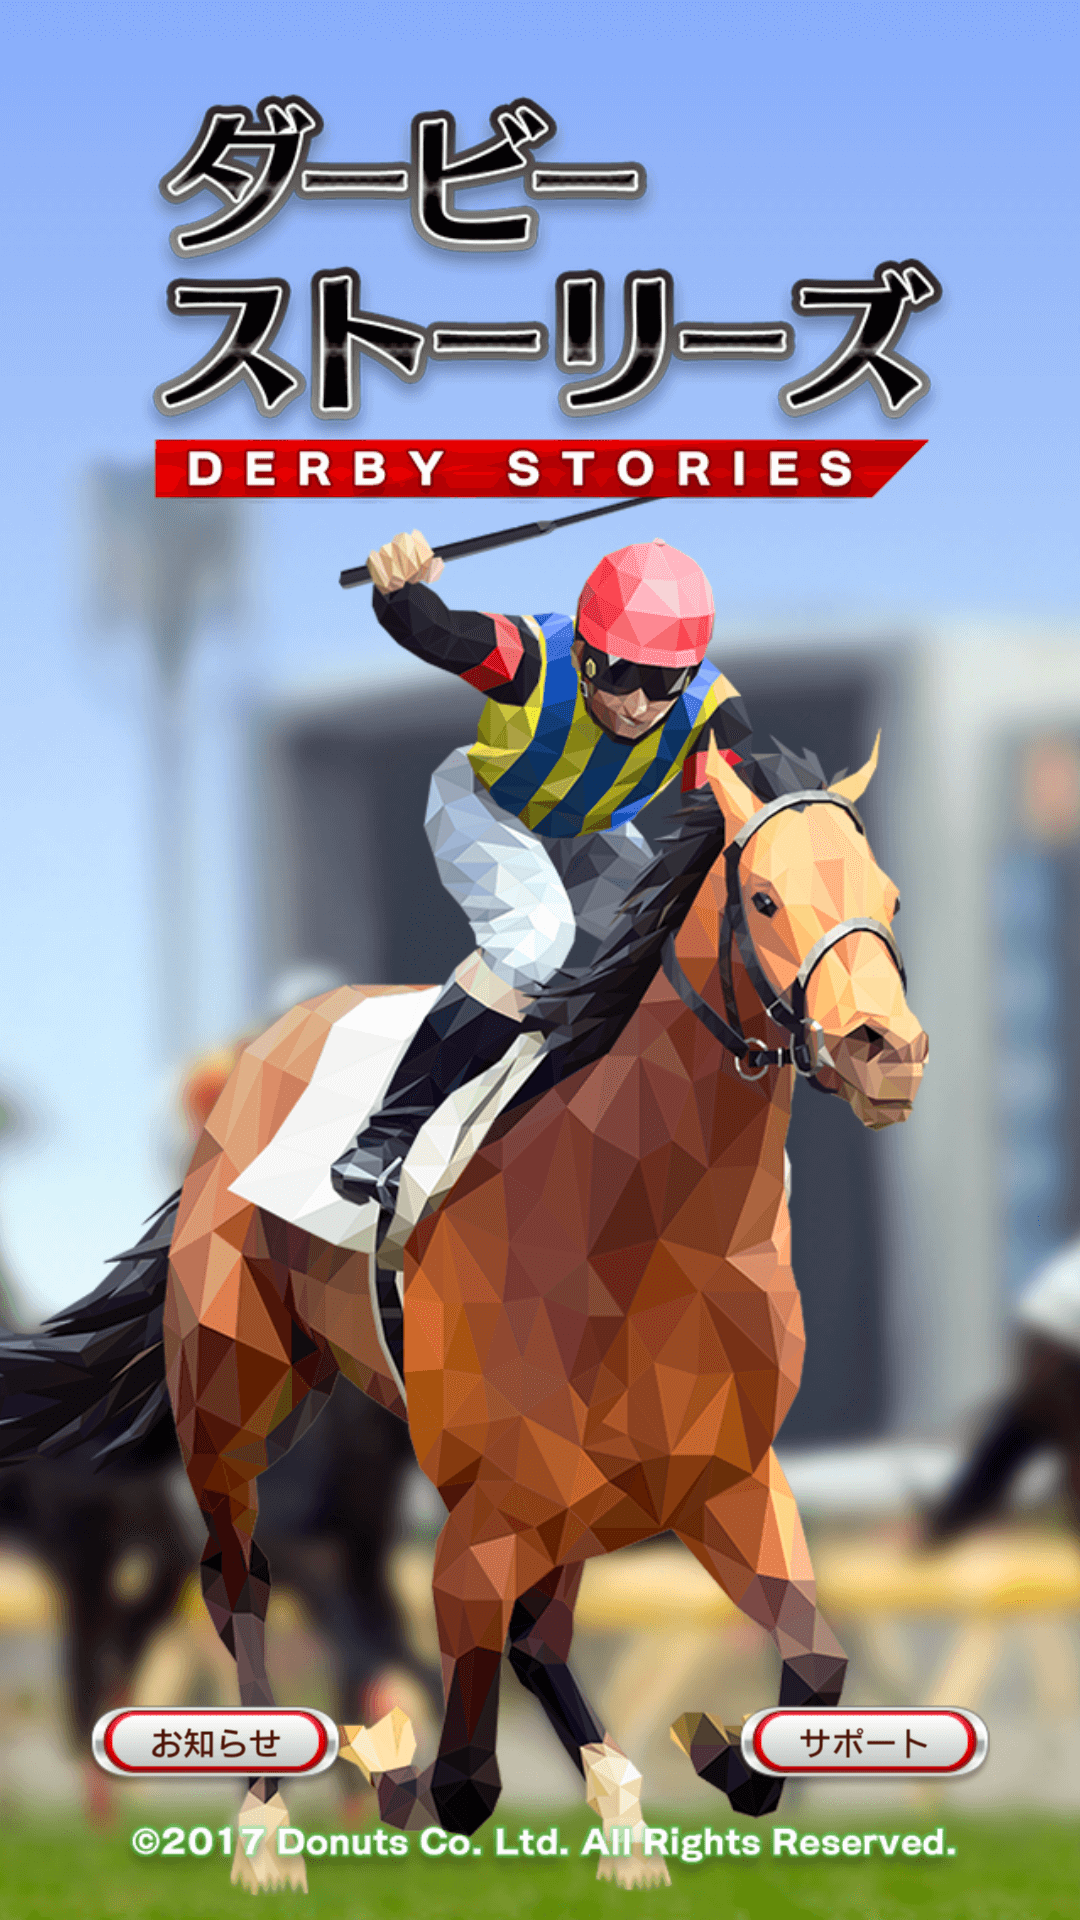 derbystories-image